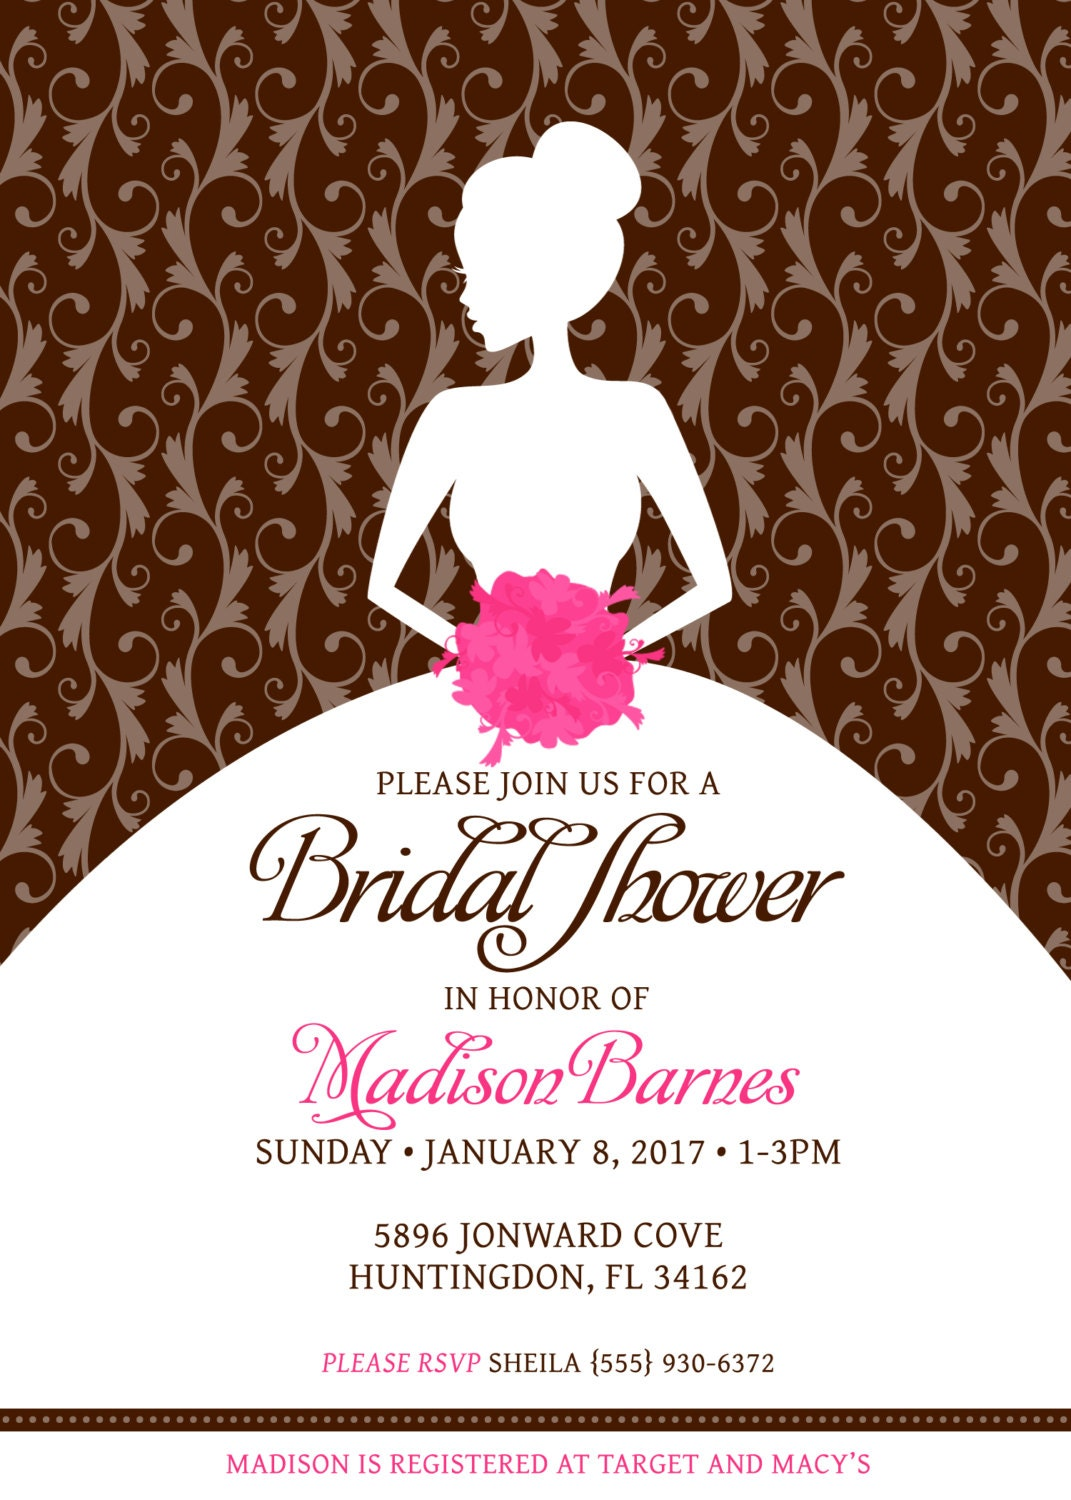 Free Printable Bridal Shower Invitation Templates for beautiful invitations layout